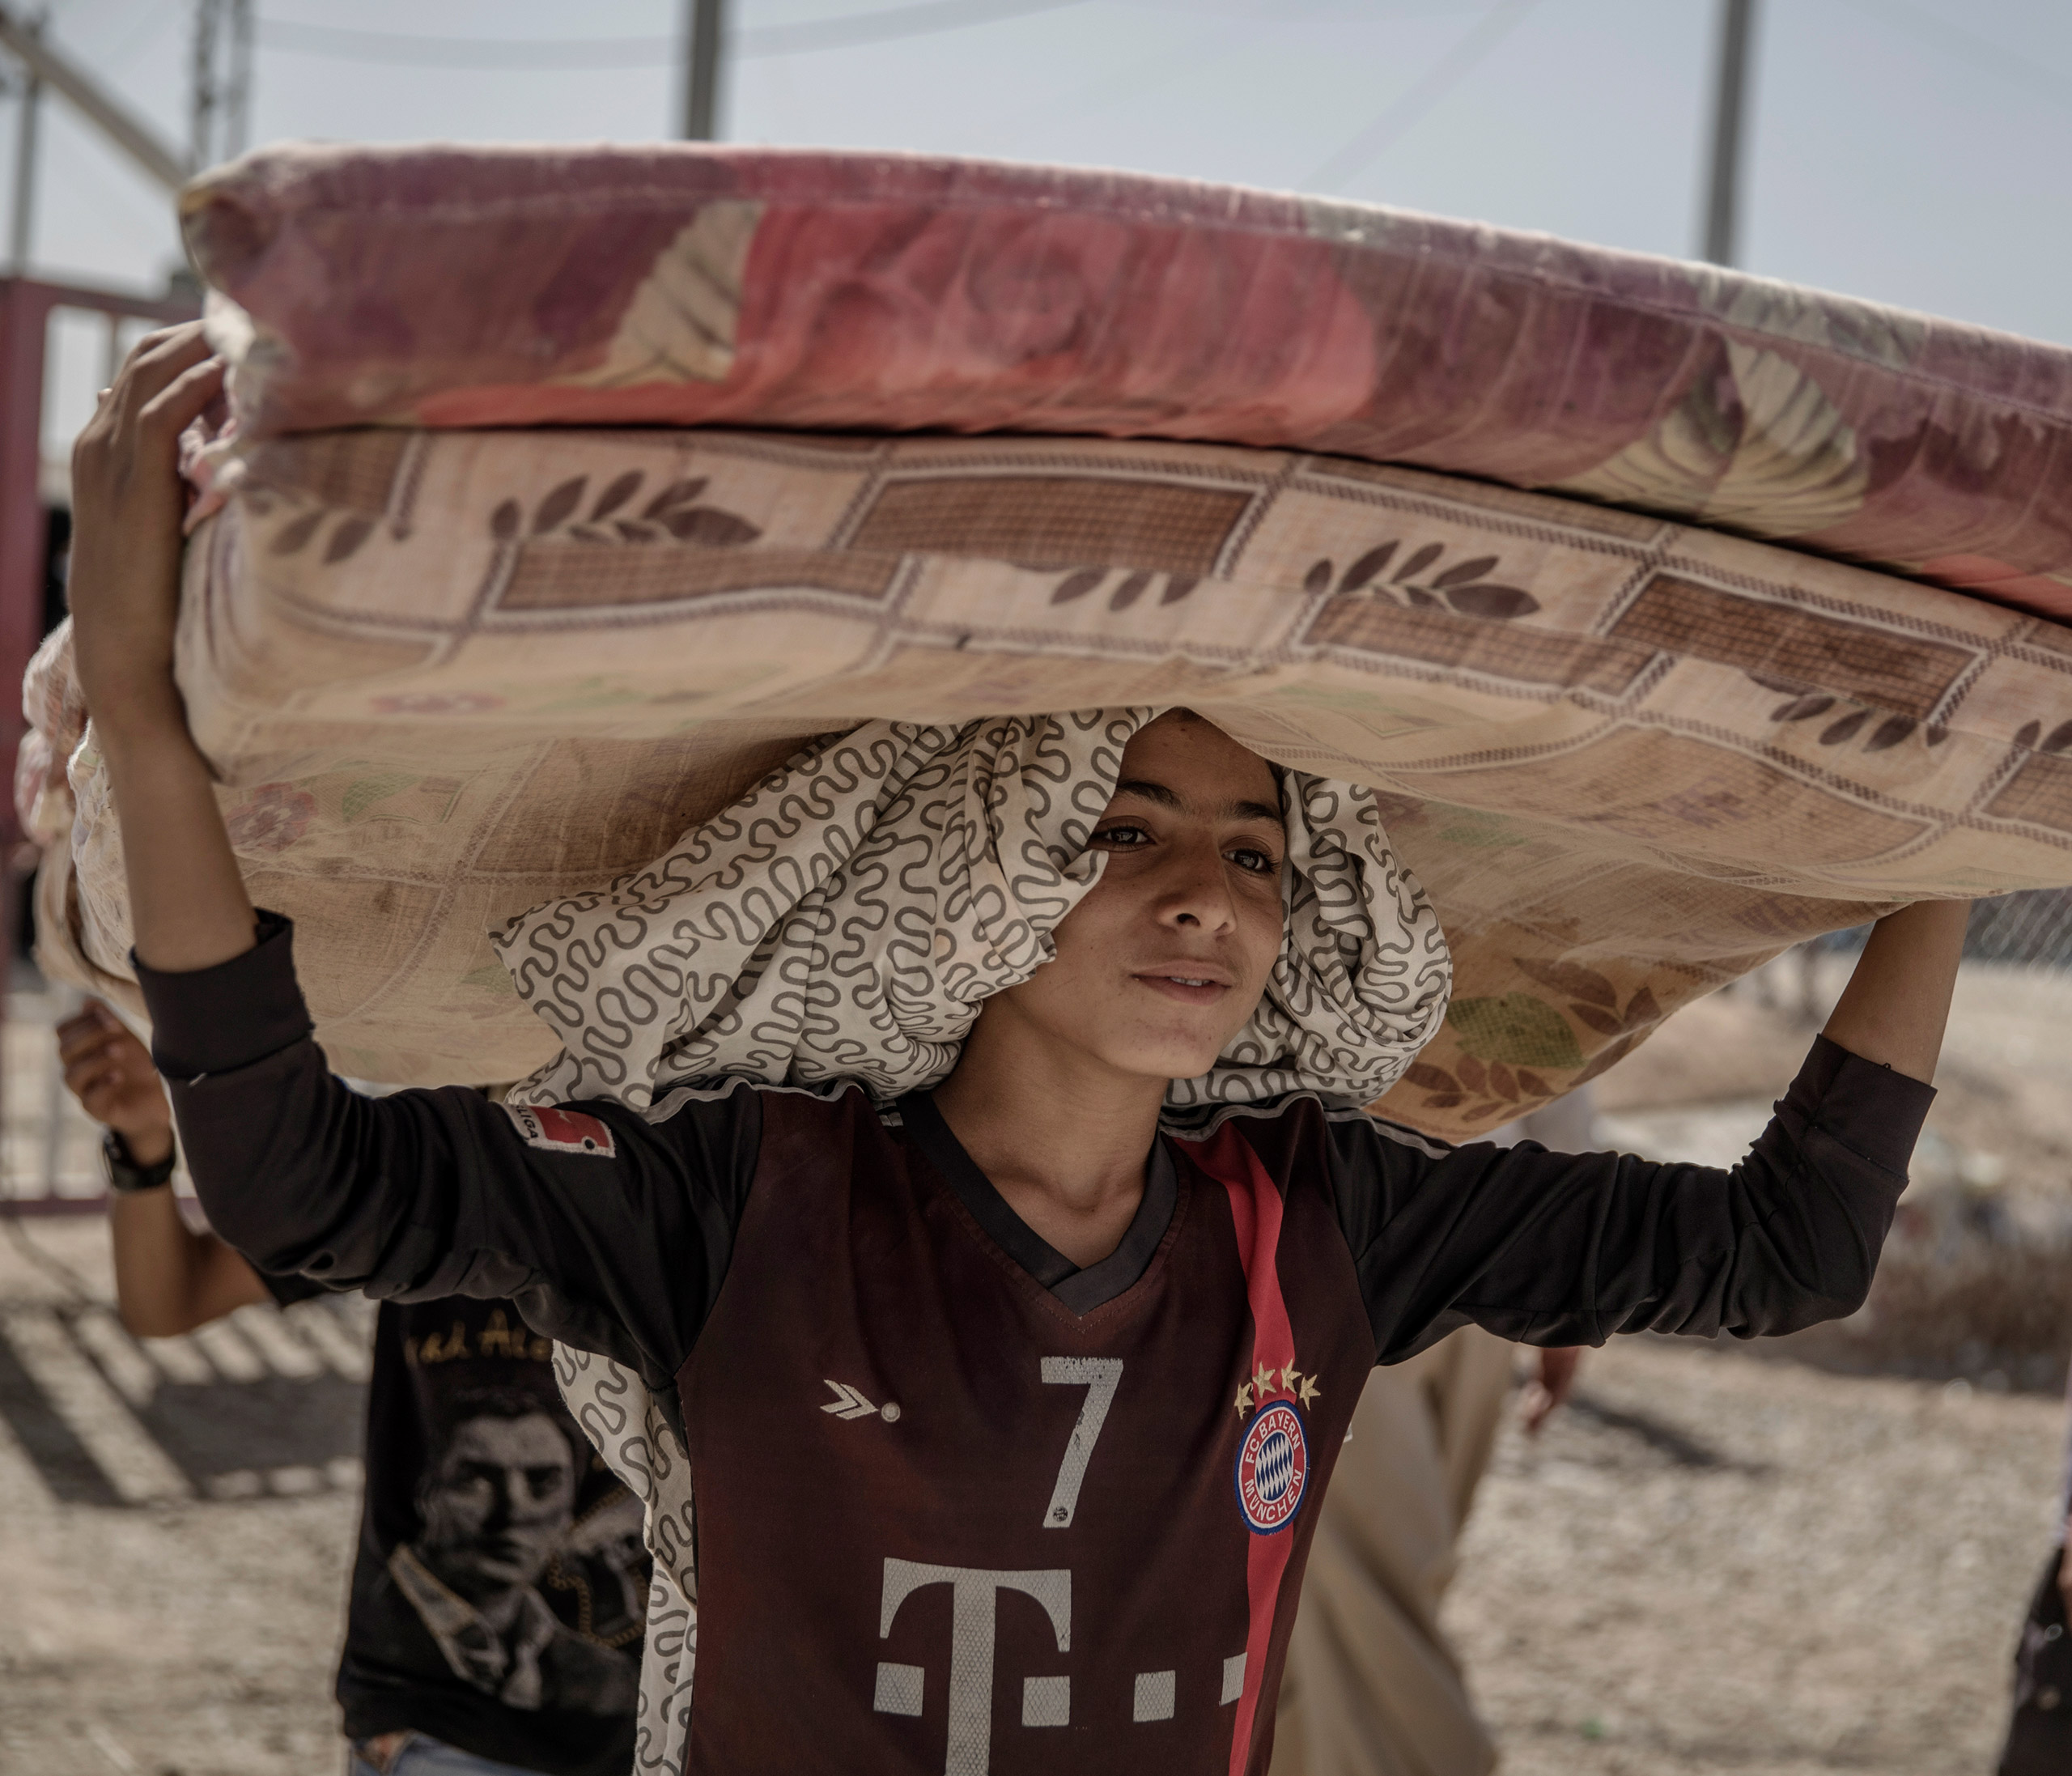 A boy at the Debaga refugee camp, outside Mosul in northern Iraq, Oct. 2016.  Displaced people (IDPs) are fleeing to this camp, which is already overcrowded, with many more refugees expected as  the offensive against ISIS continues.